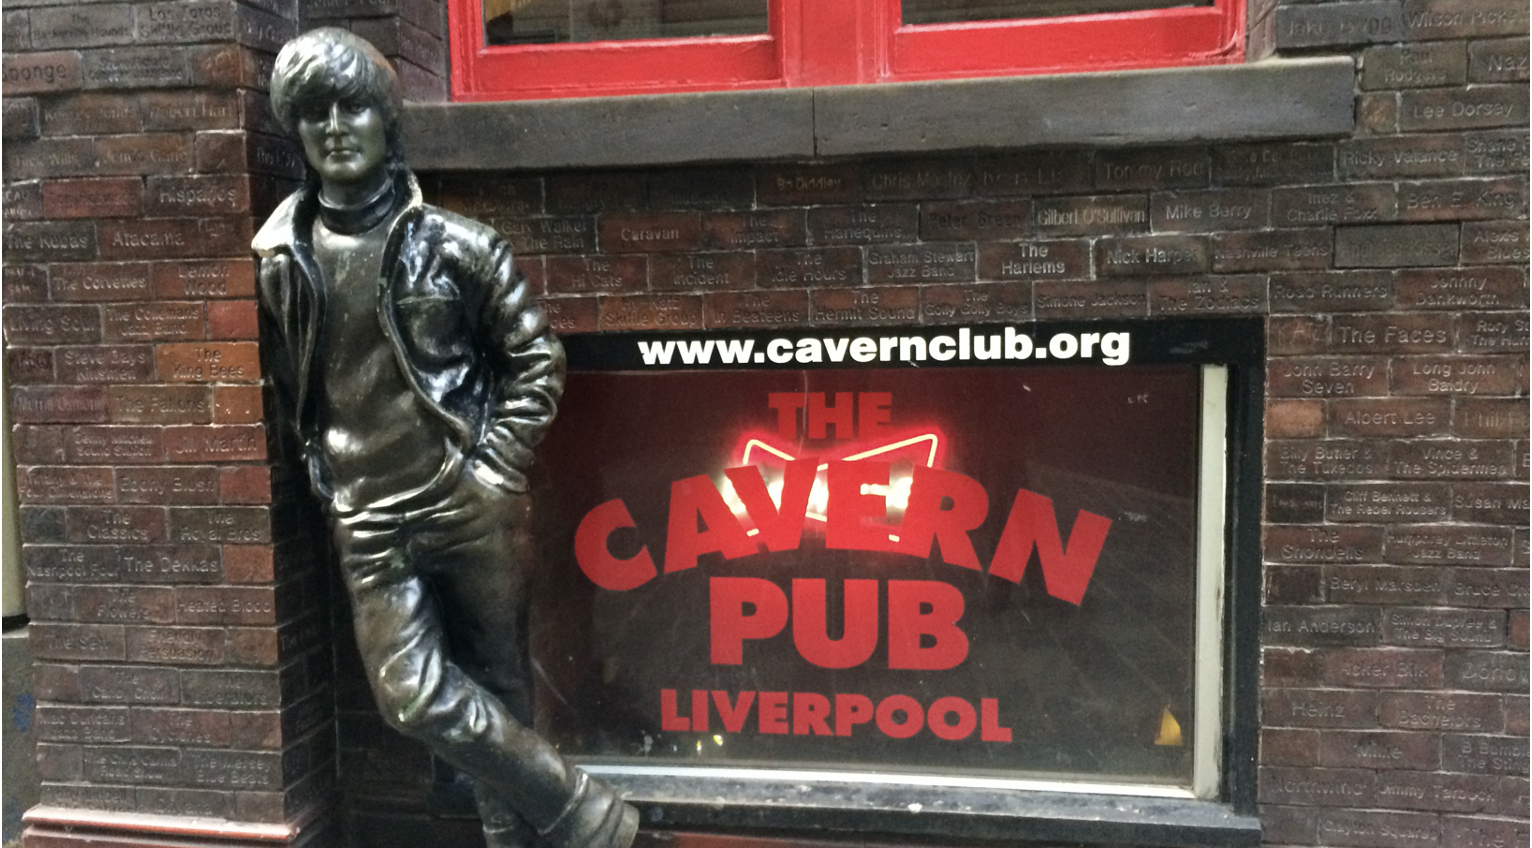 A statue of John Lennon standing beside a glass window with red painted letters that read The Cavern Plub Liverpool